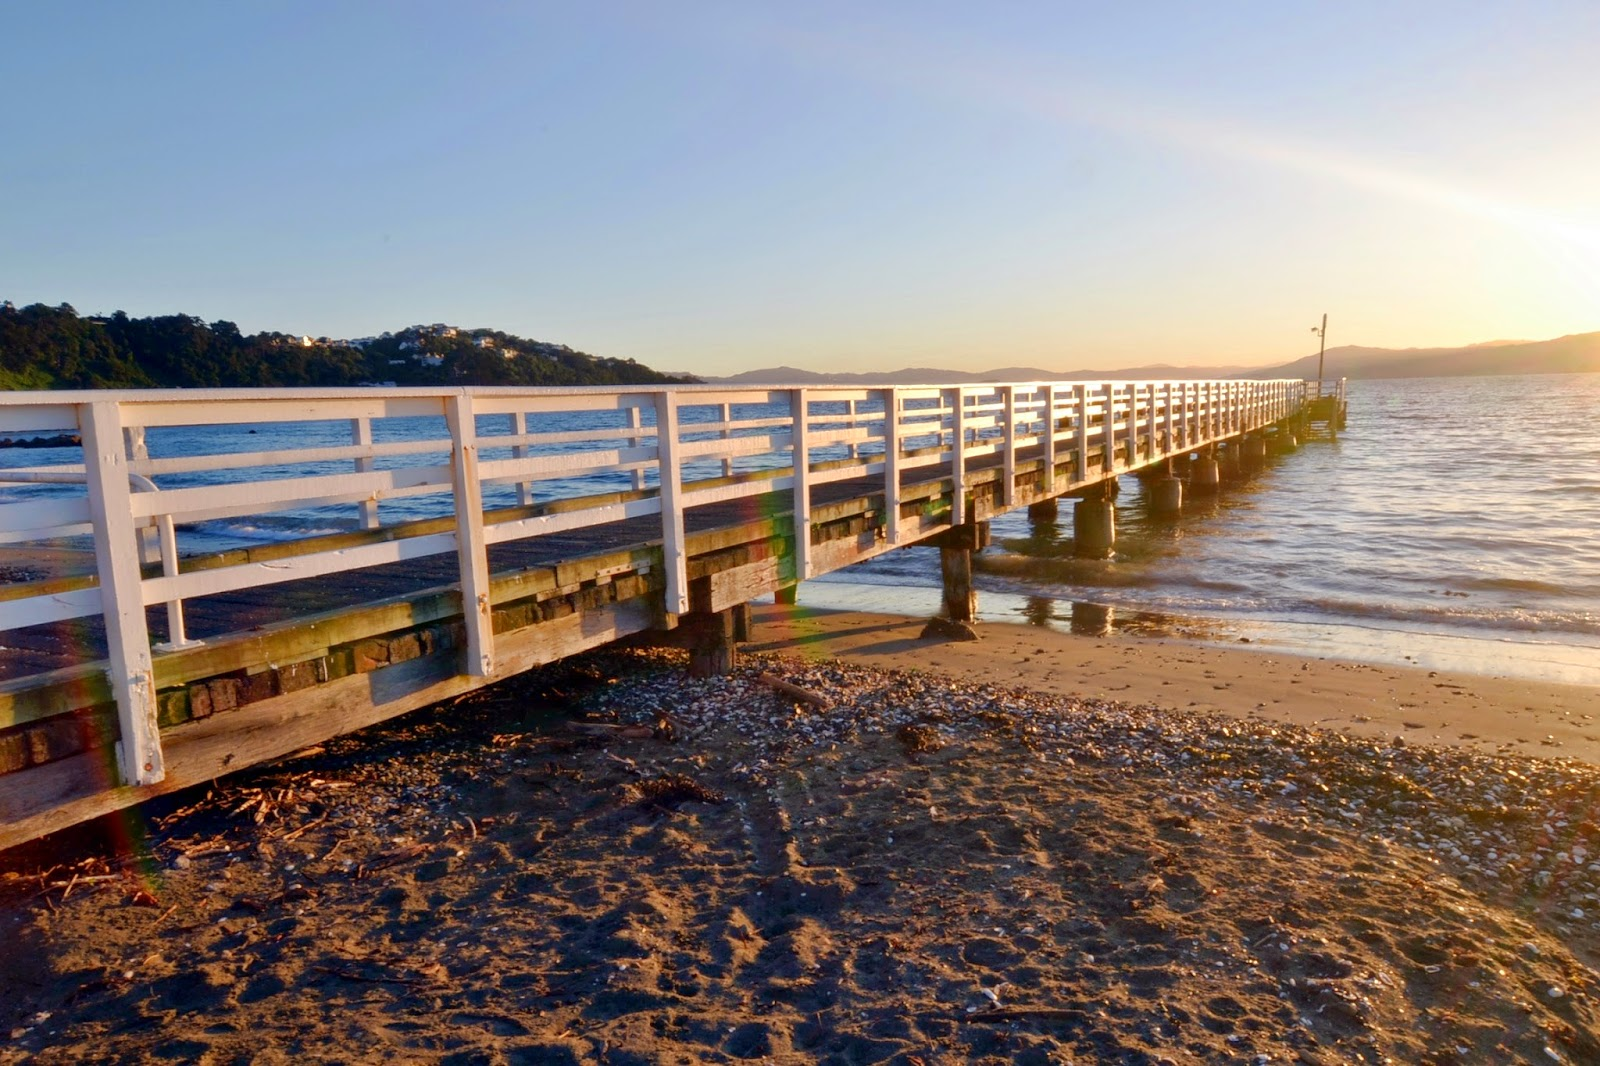 Seatoun Pier at sunrise